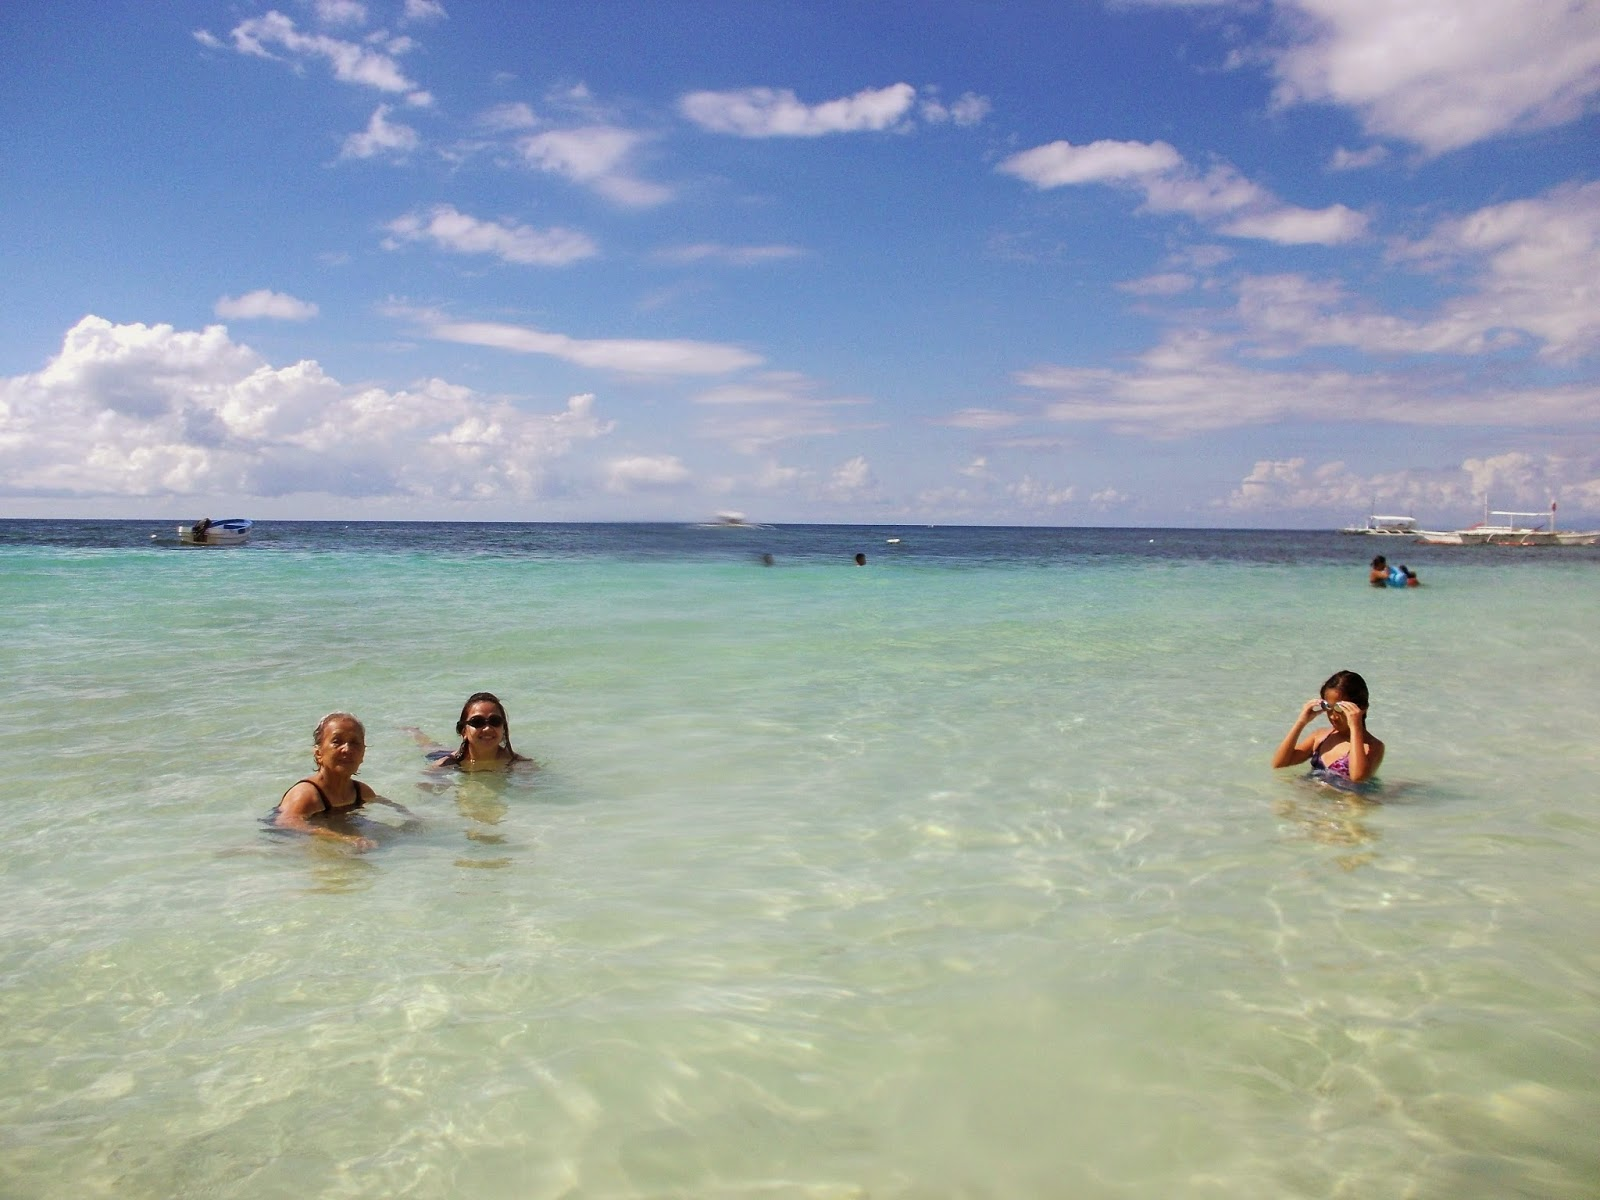 Swimming Time on Alona Beach In Panglao Bohol